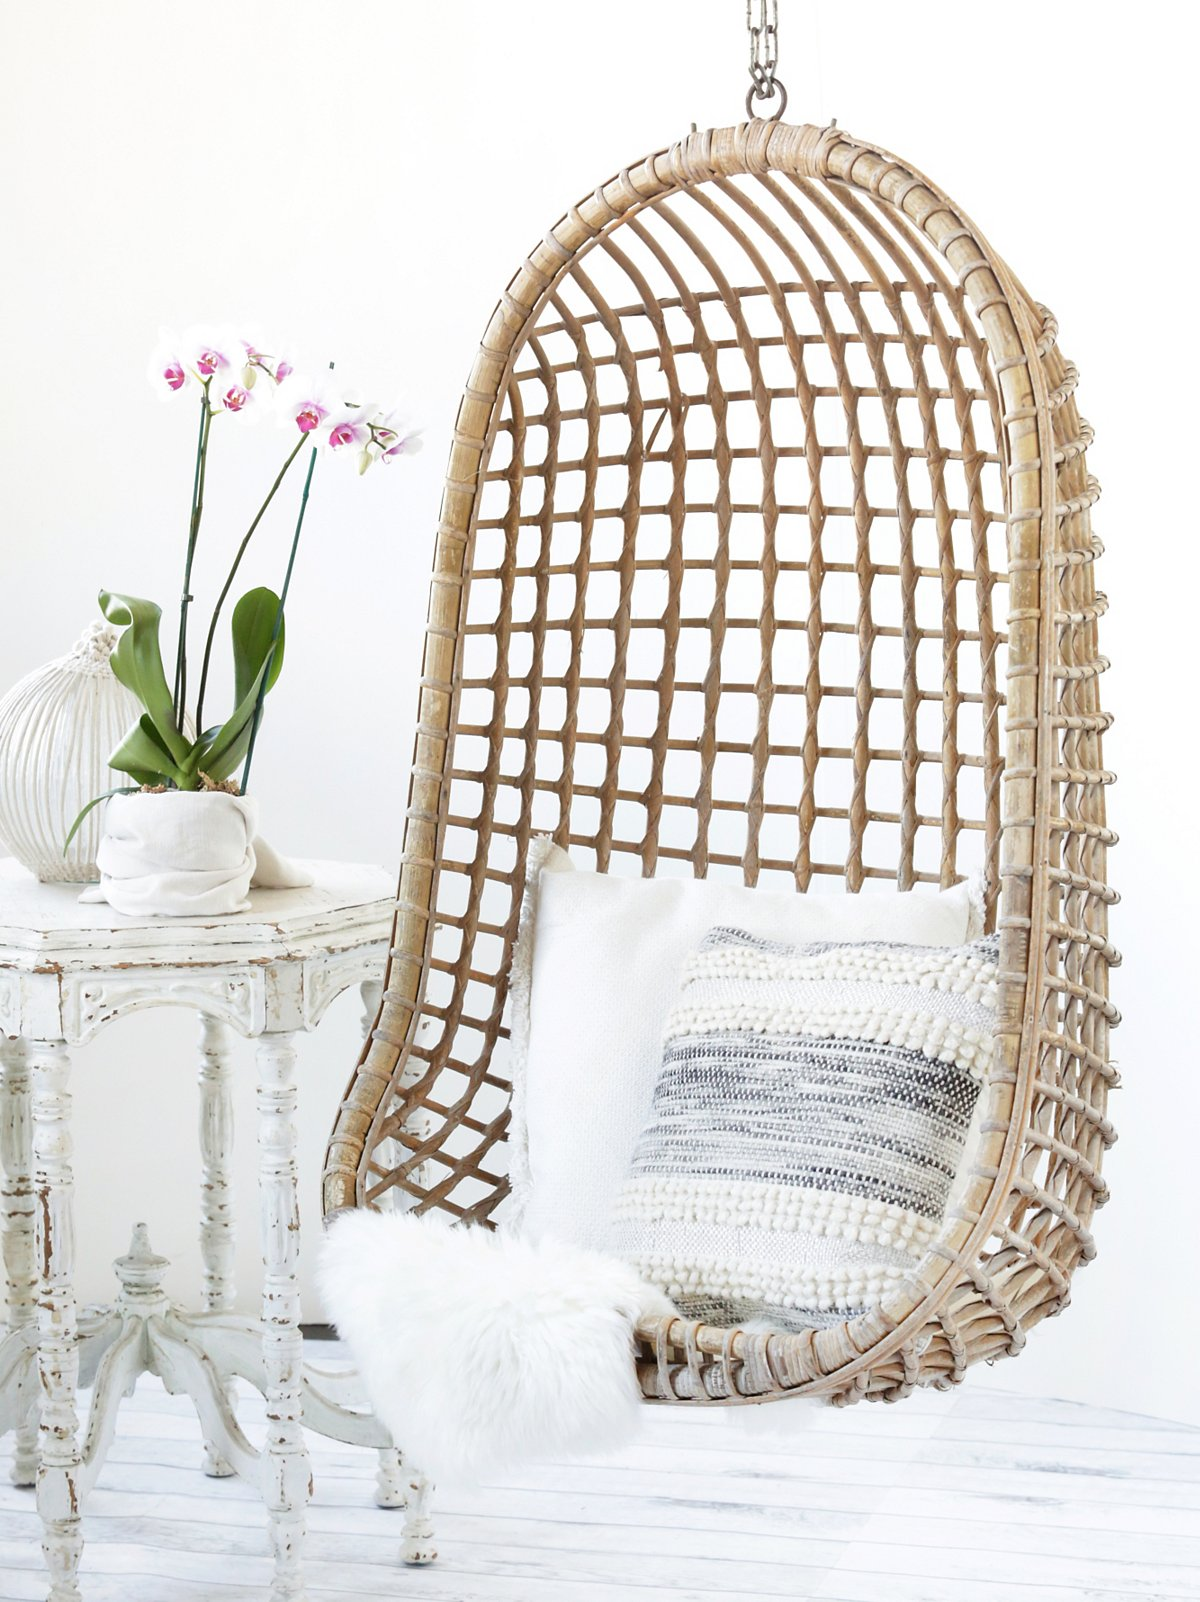 Vintage Rattan Hang Chair - SOLD